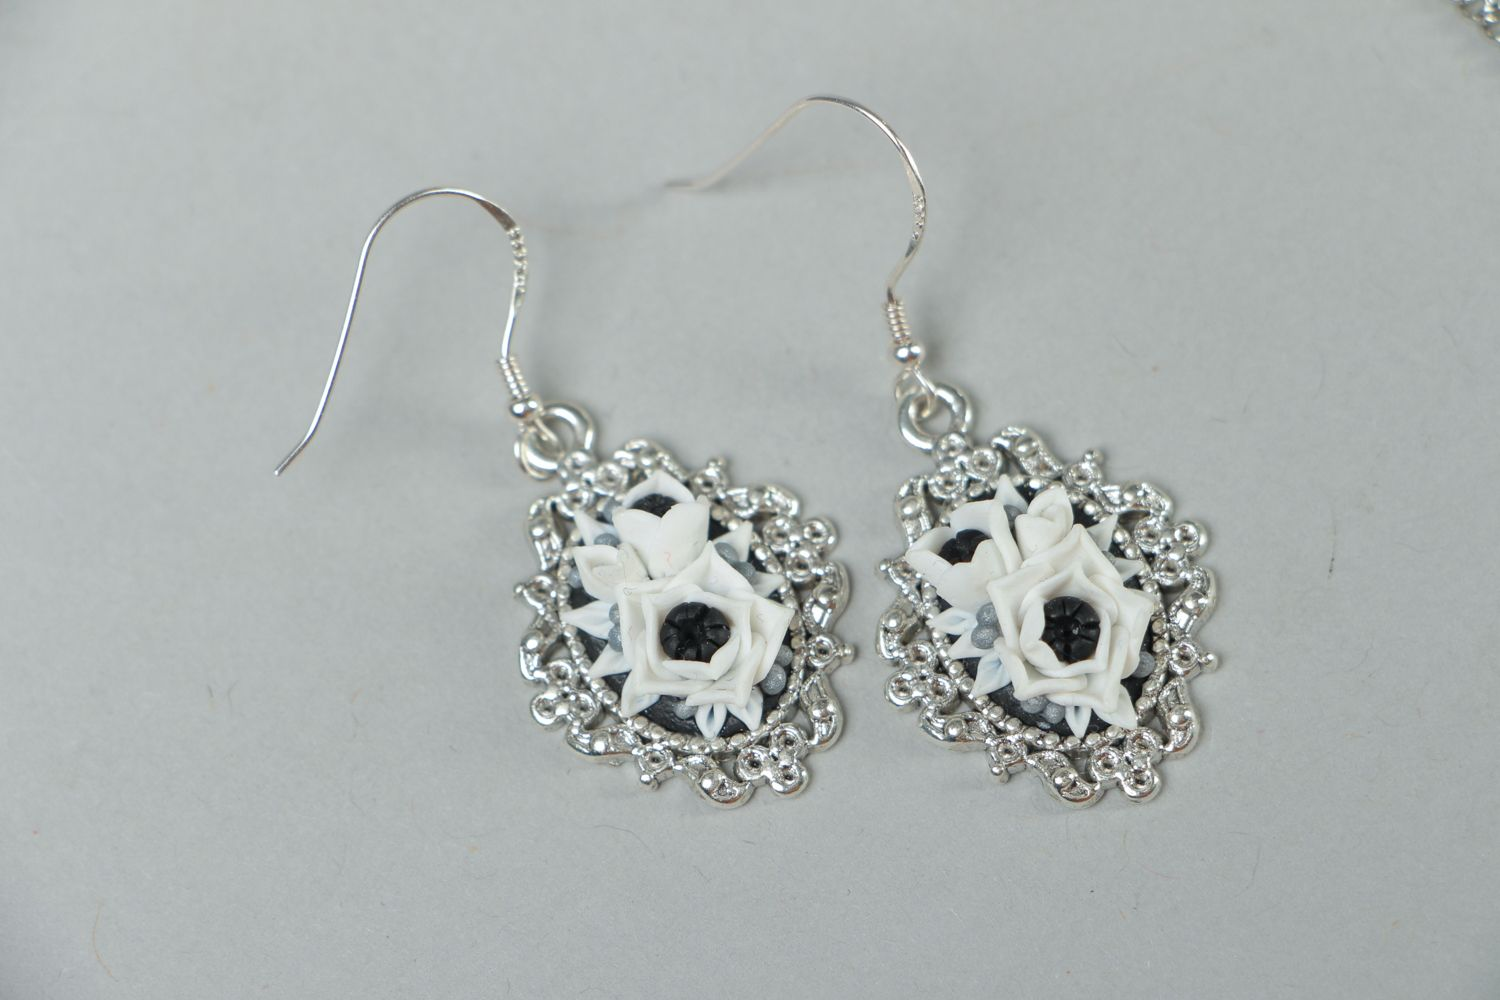 Handmade polymer clay jewelry earrings and pendant White Anemones photo 2